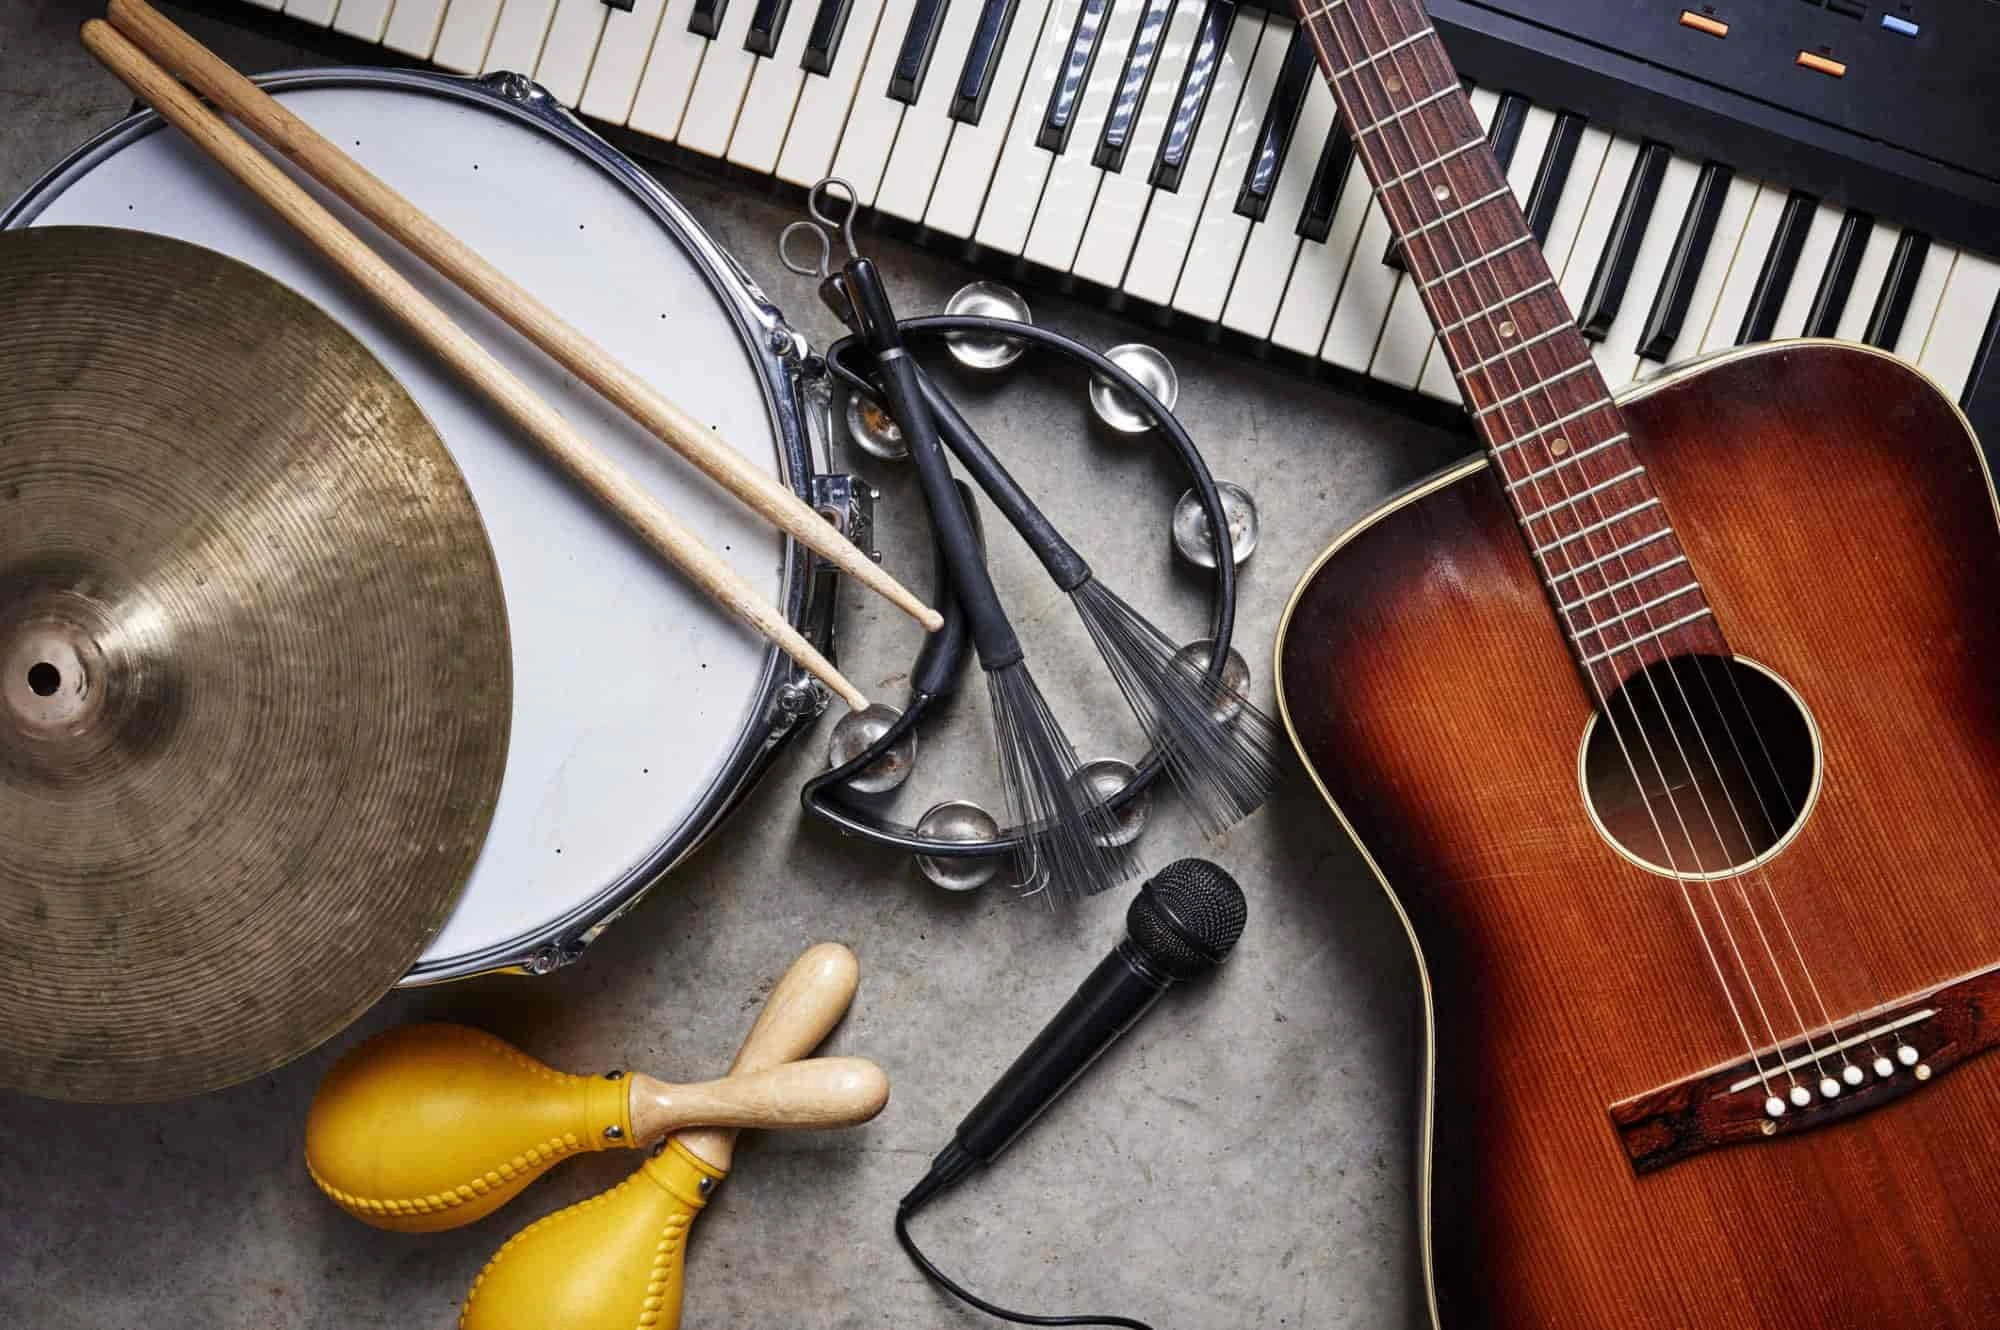 Putting your musical instruments into storage for a while? This article will help you to do so, keeping them protected and in great condition.